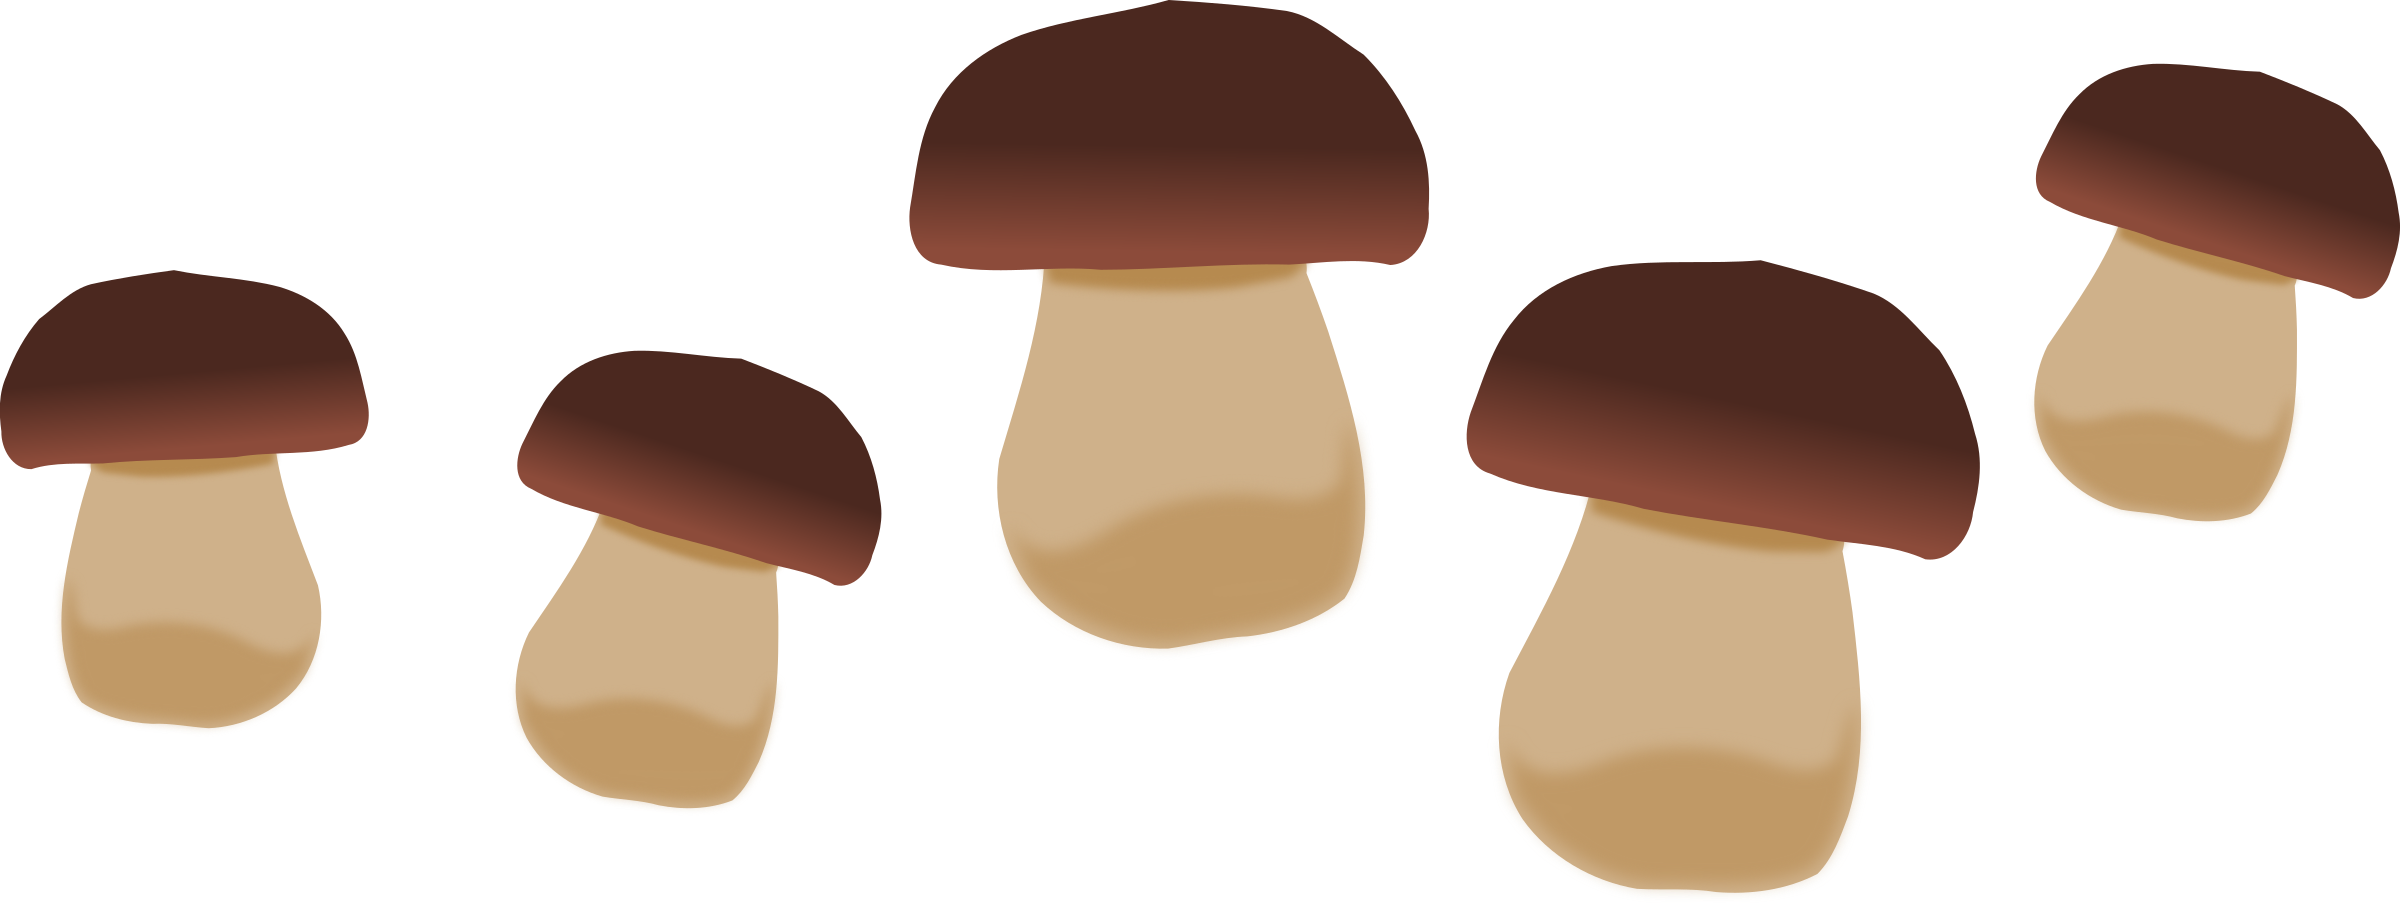 Mushrooms vector sliced mushroom. Graphic royalty free